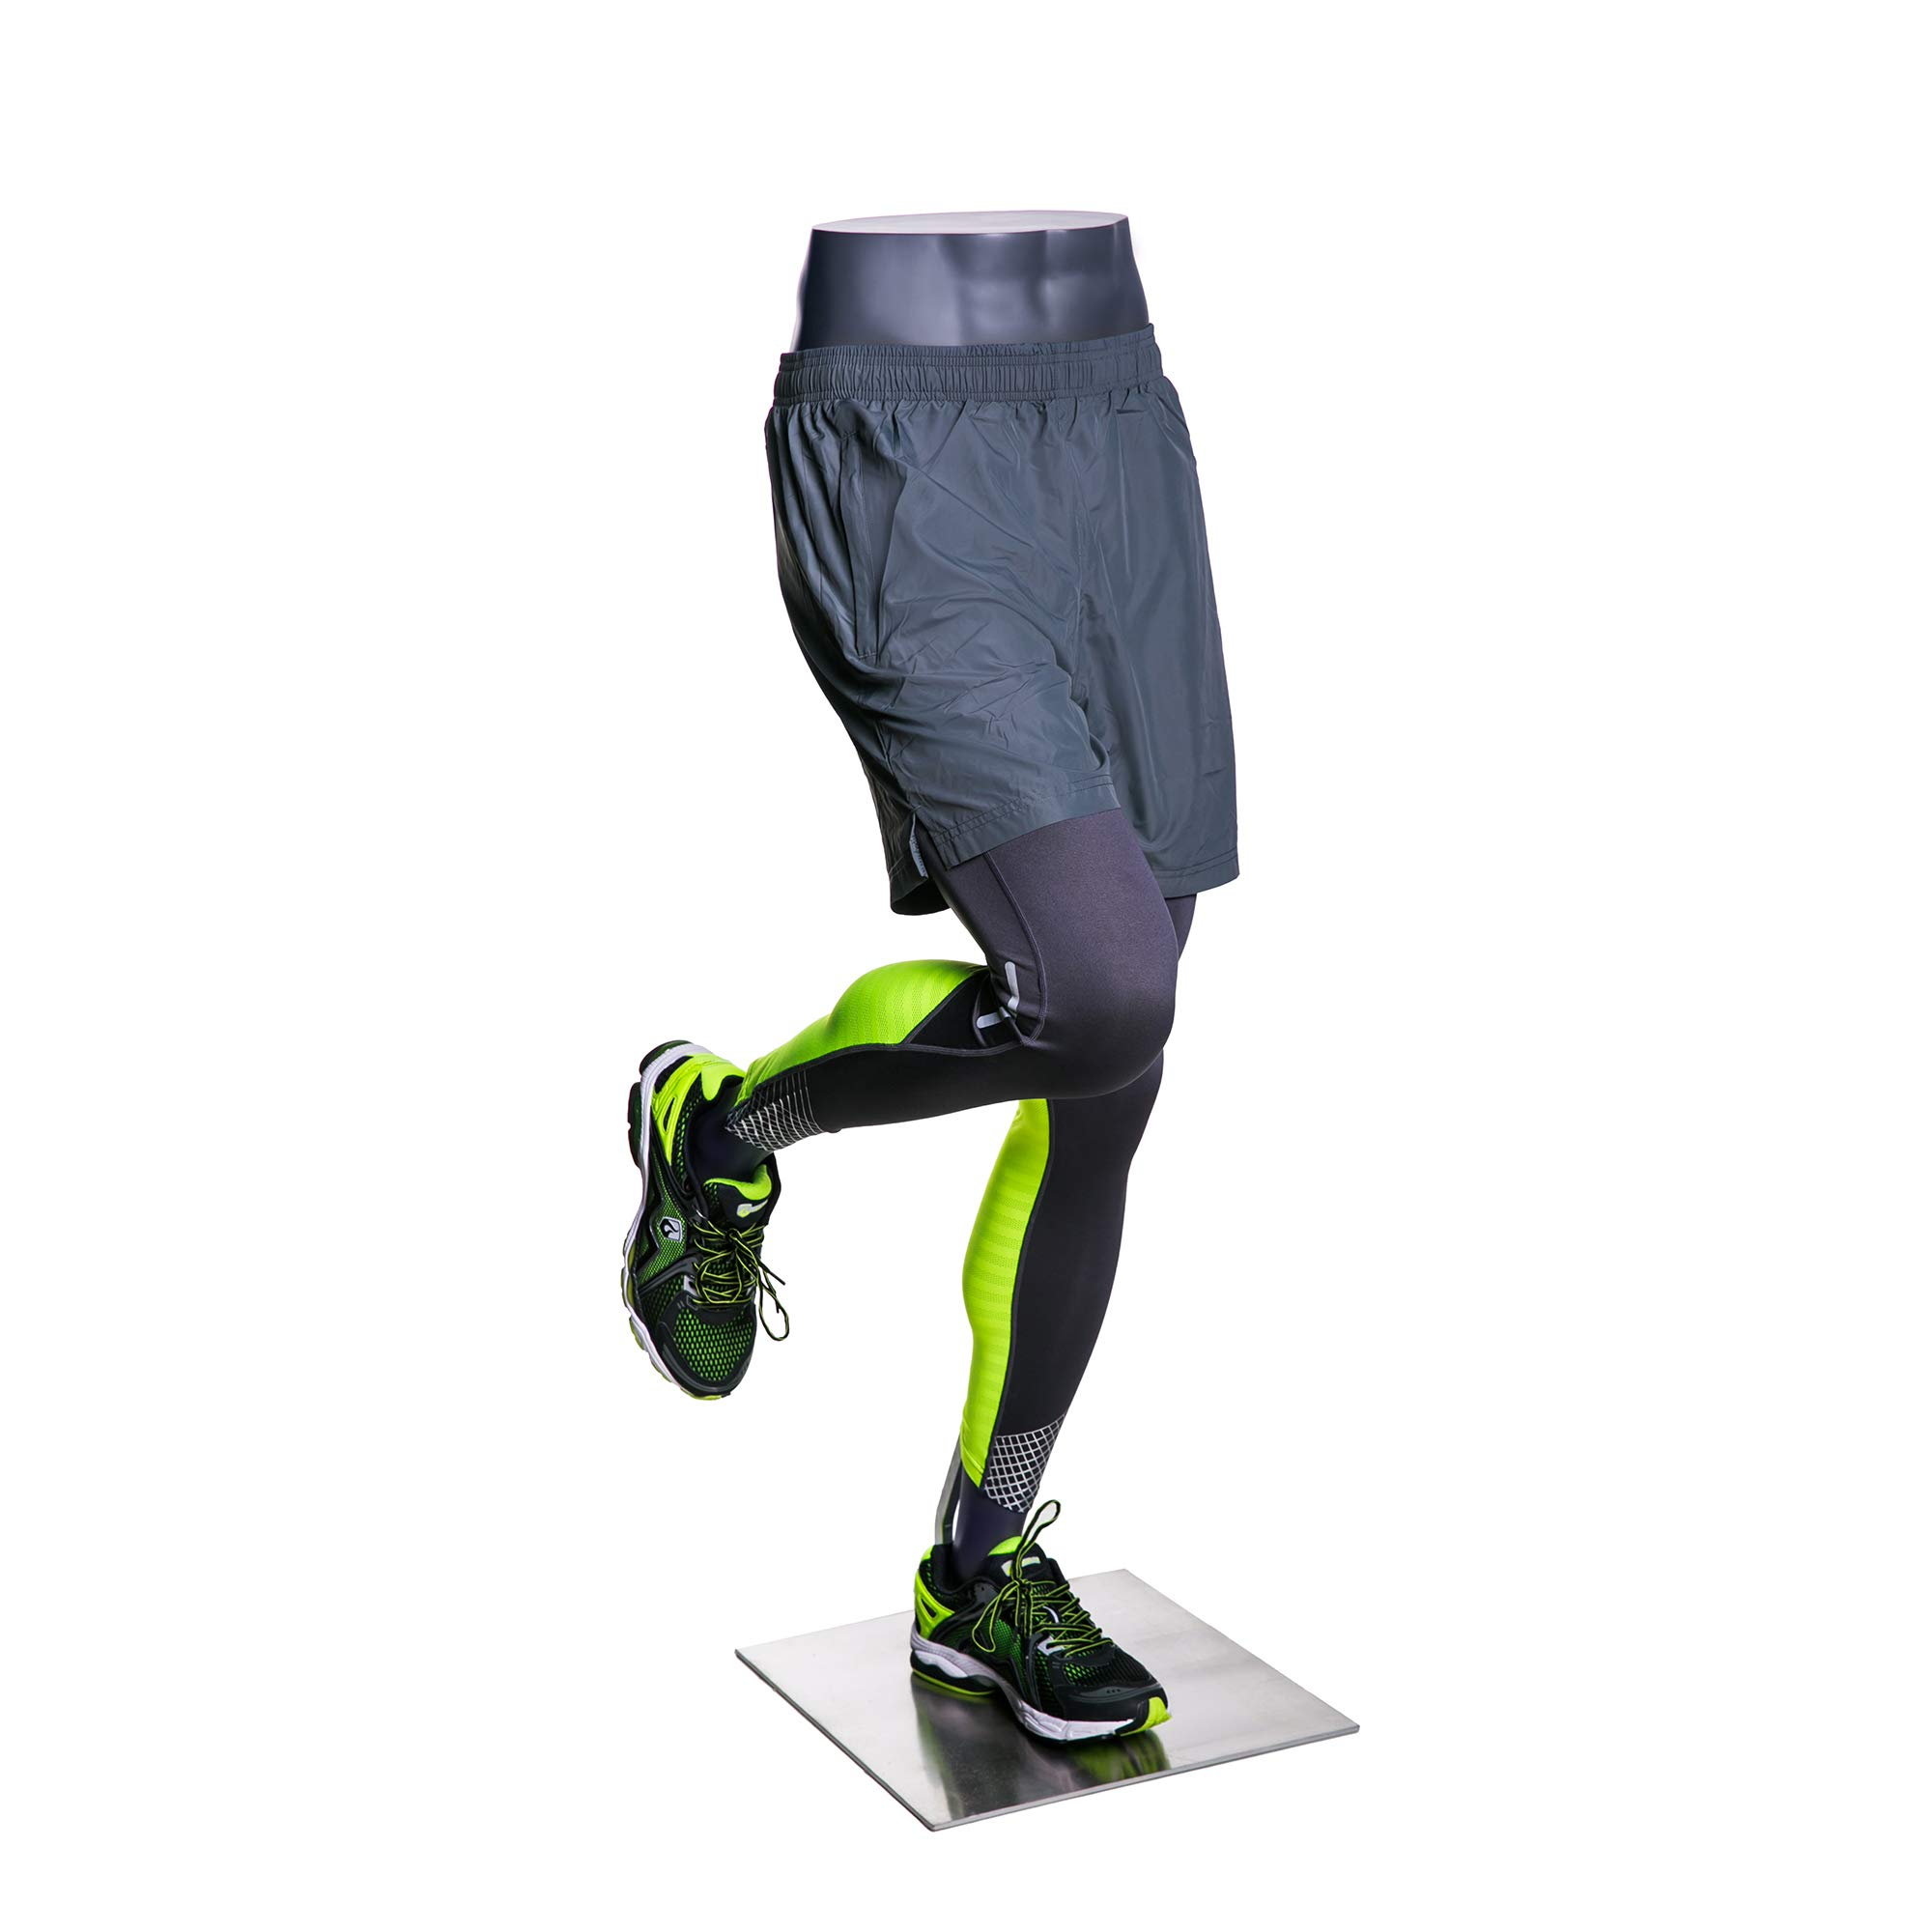 (MZ-HEF50LEG) High end Quality. Eye Catching Male Headless Mannequin Leg, Athletic Style. Running Pose. by Roxy Display (Image #2)